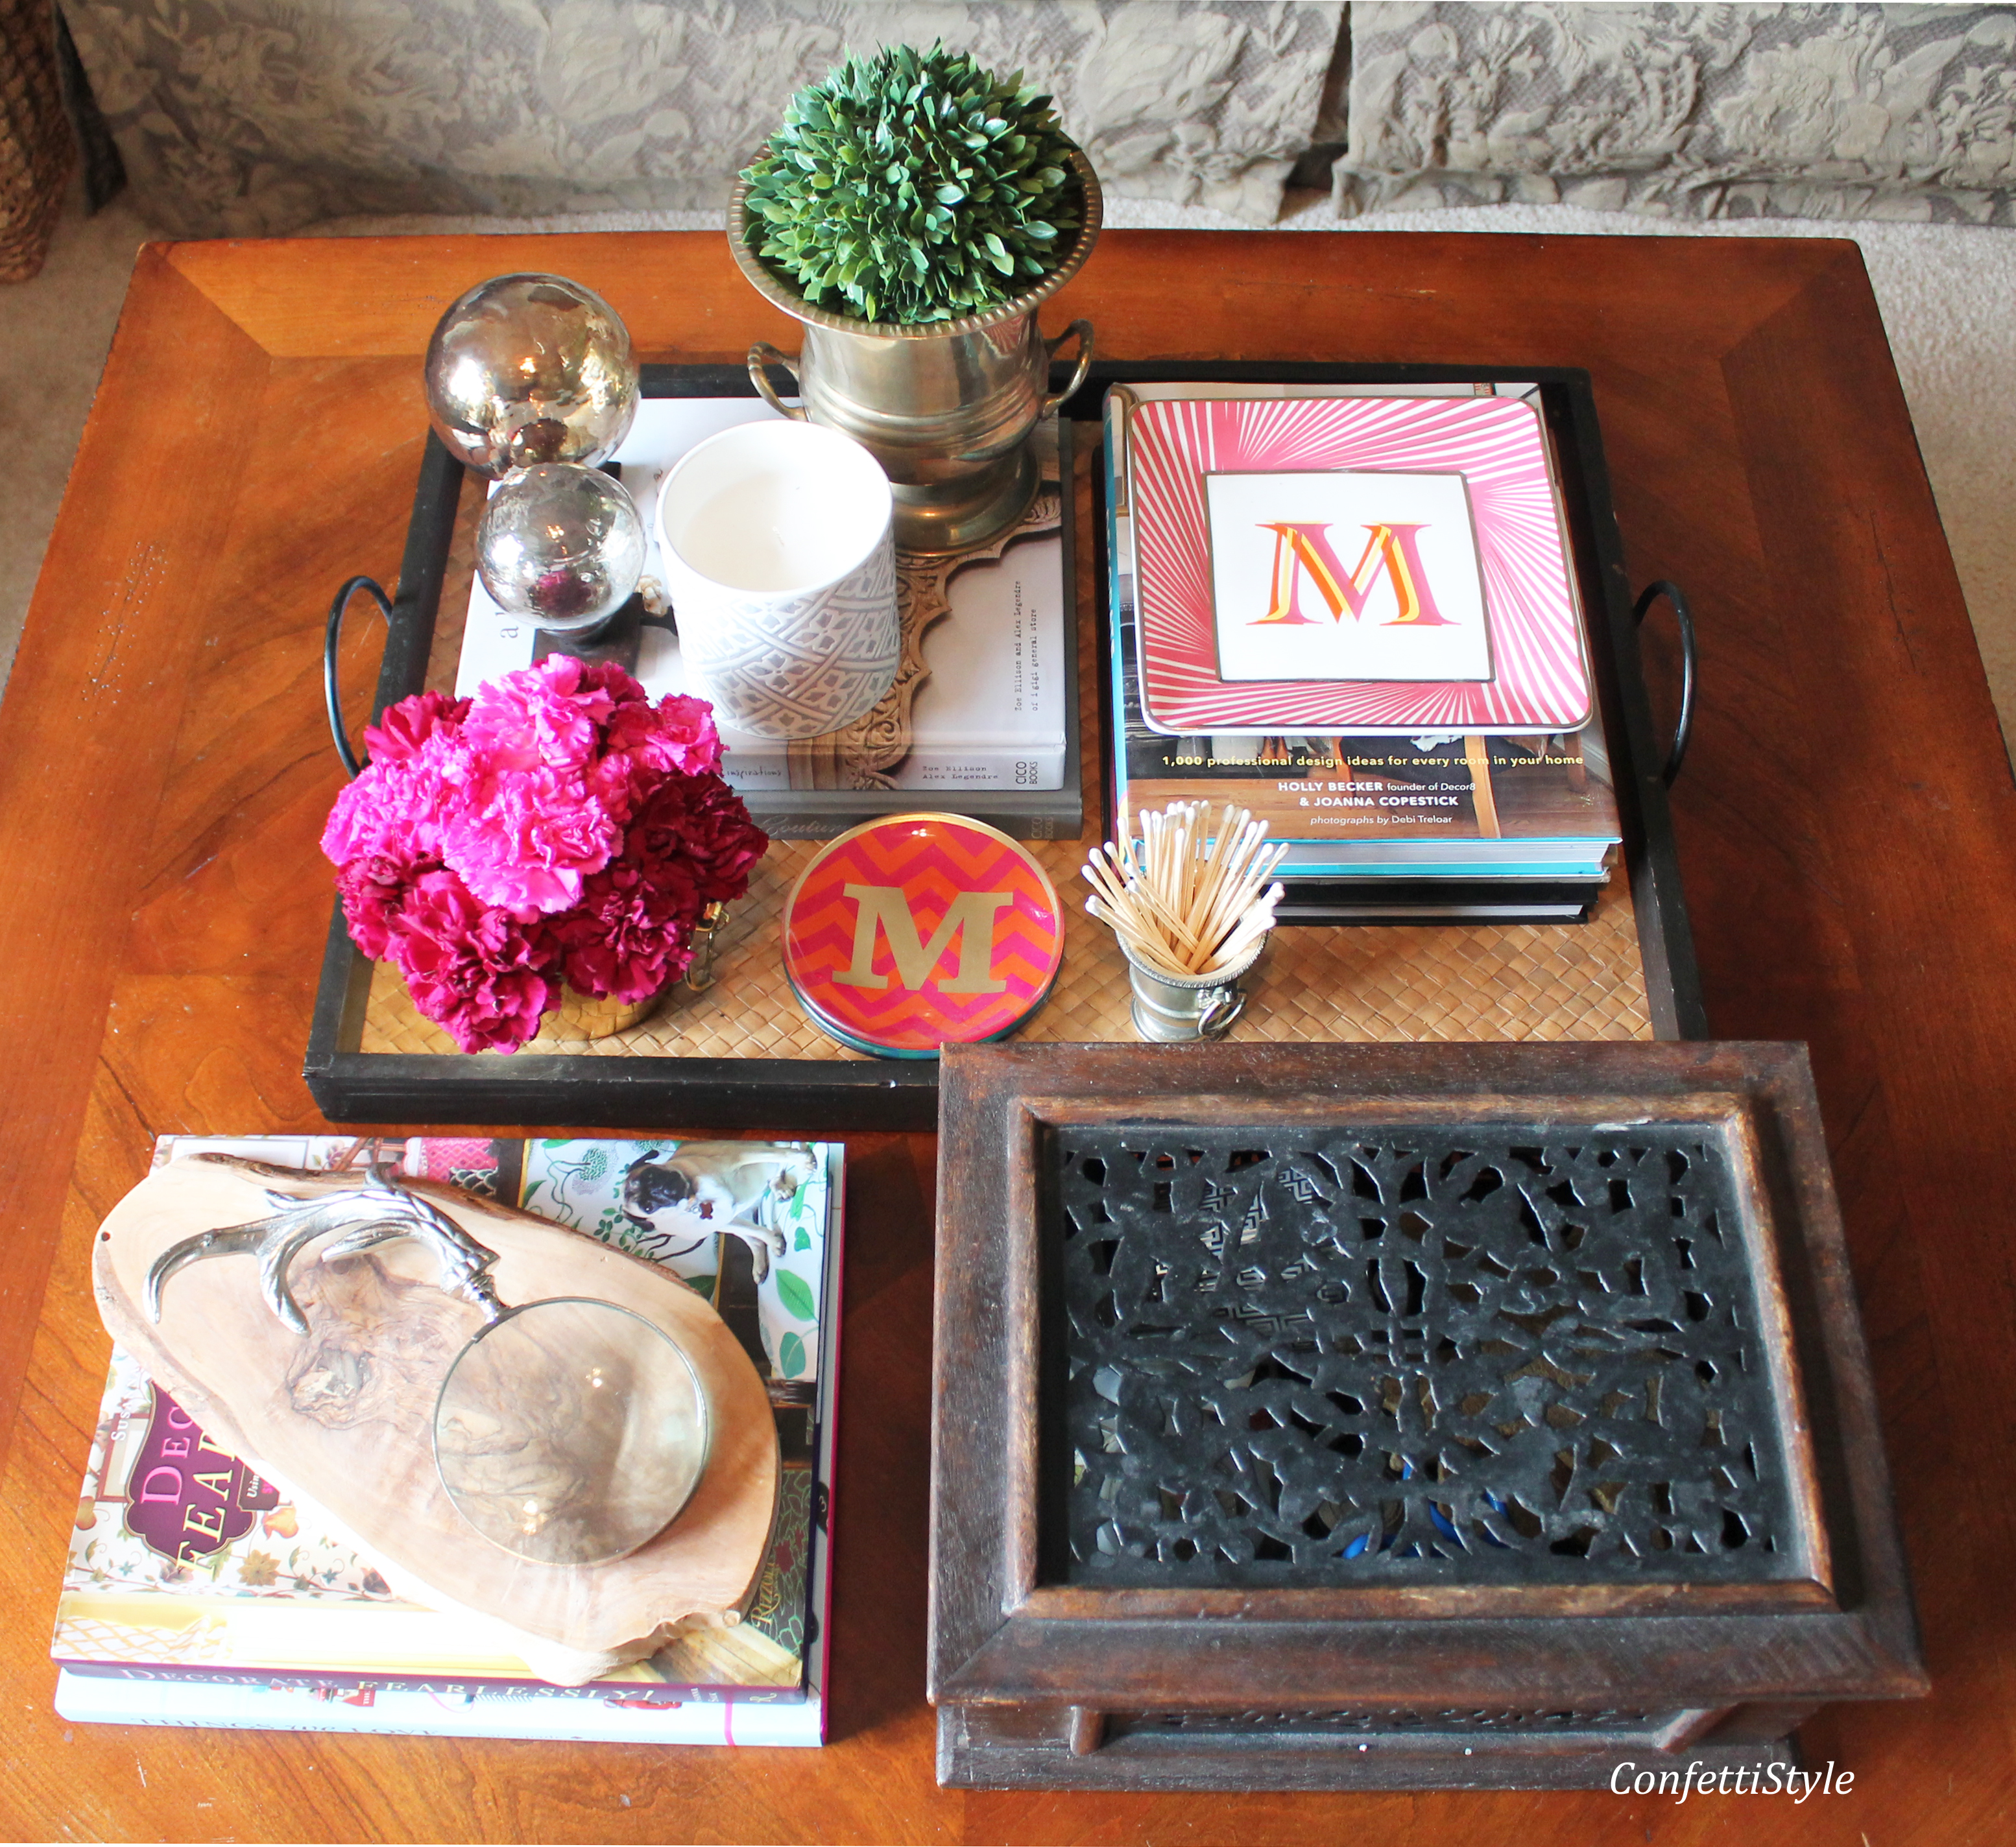 The Anatomy Styling A Coffee Table Tray